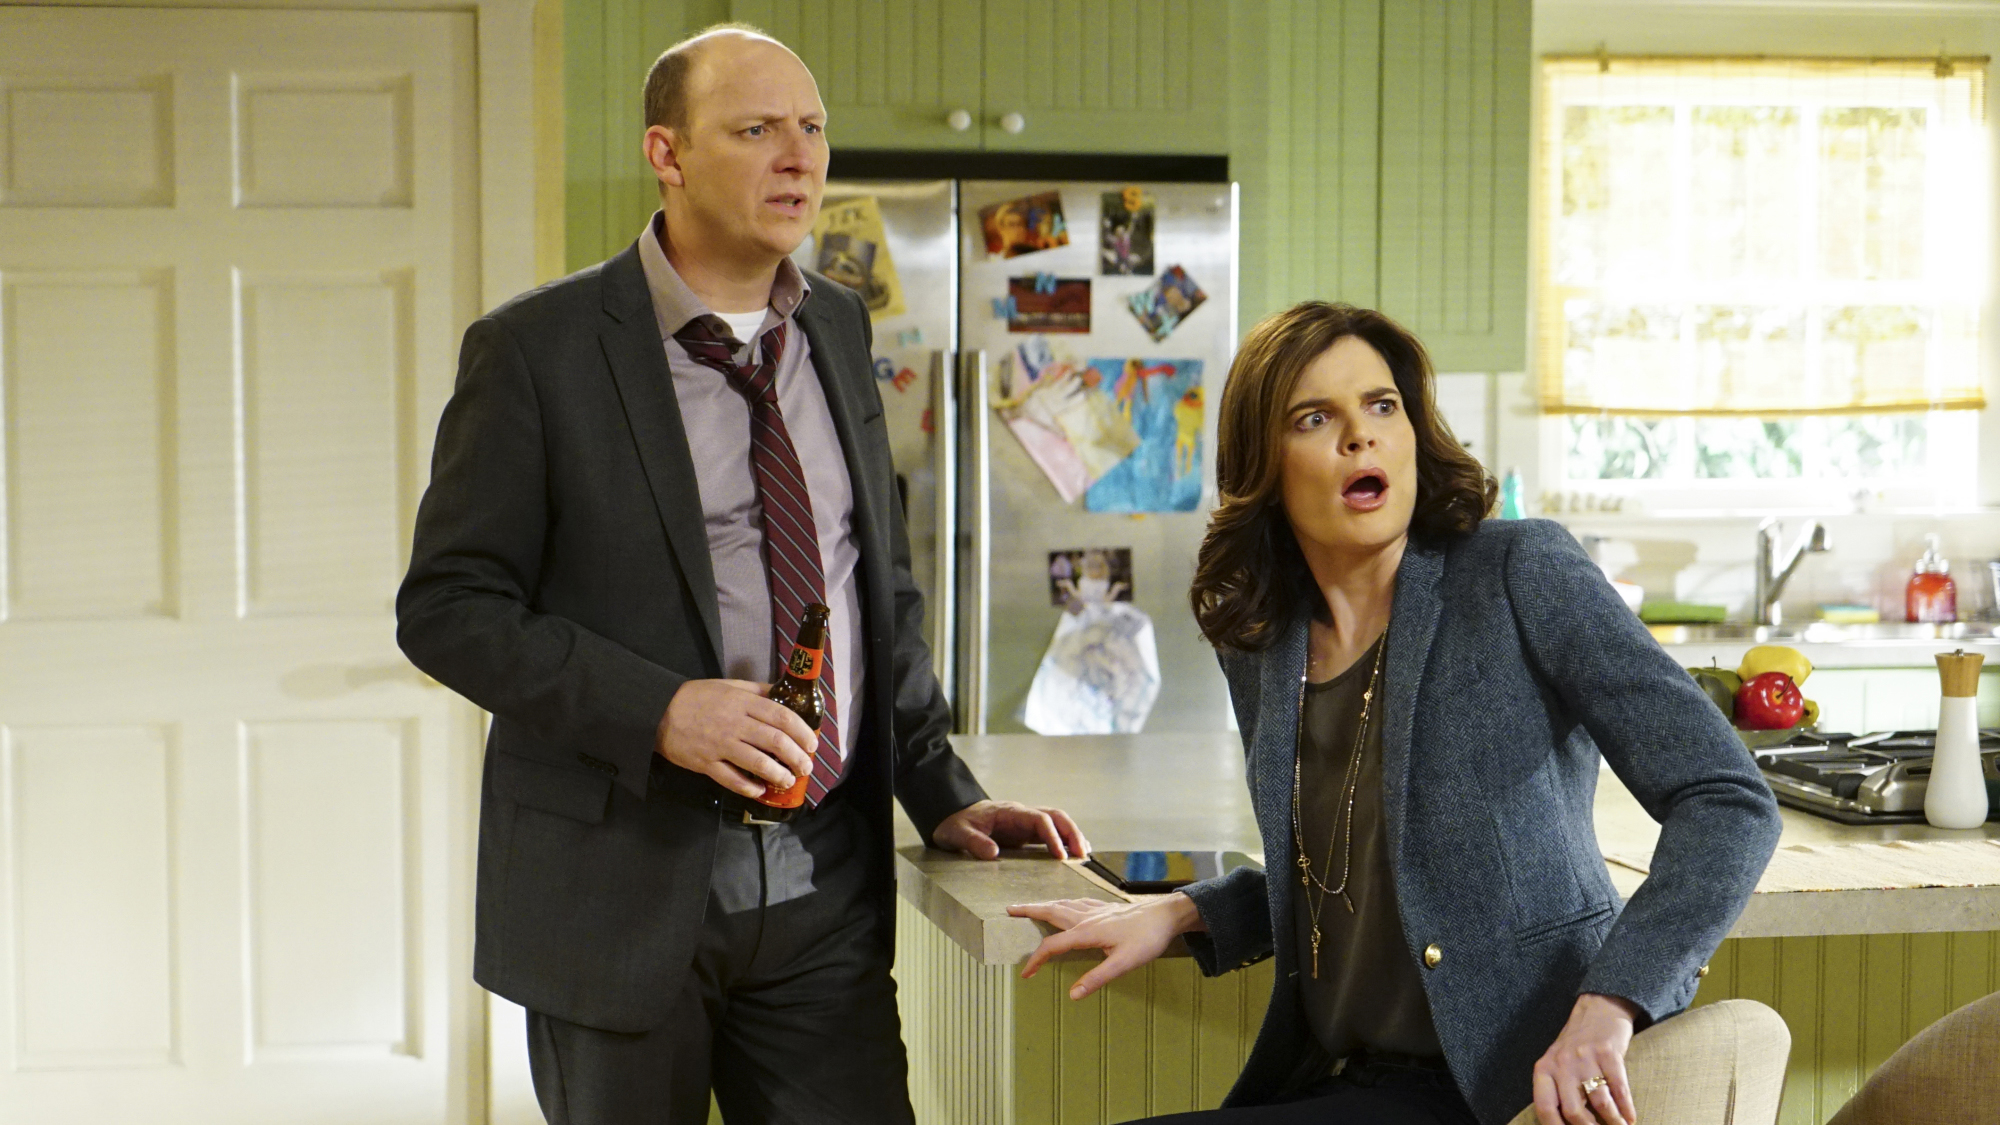 Tim and Heather are shocked by something Tyler says.